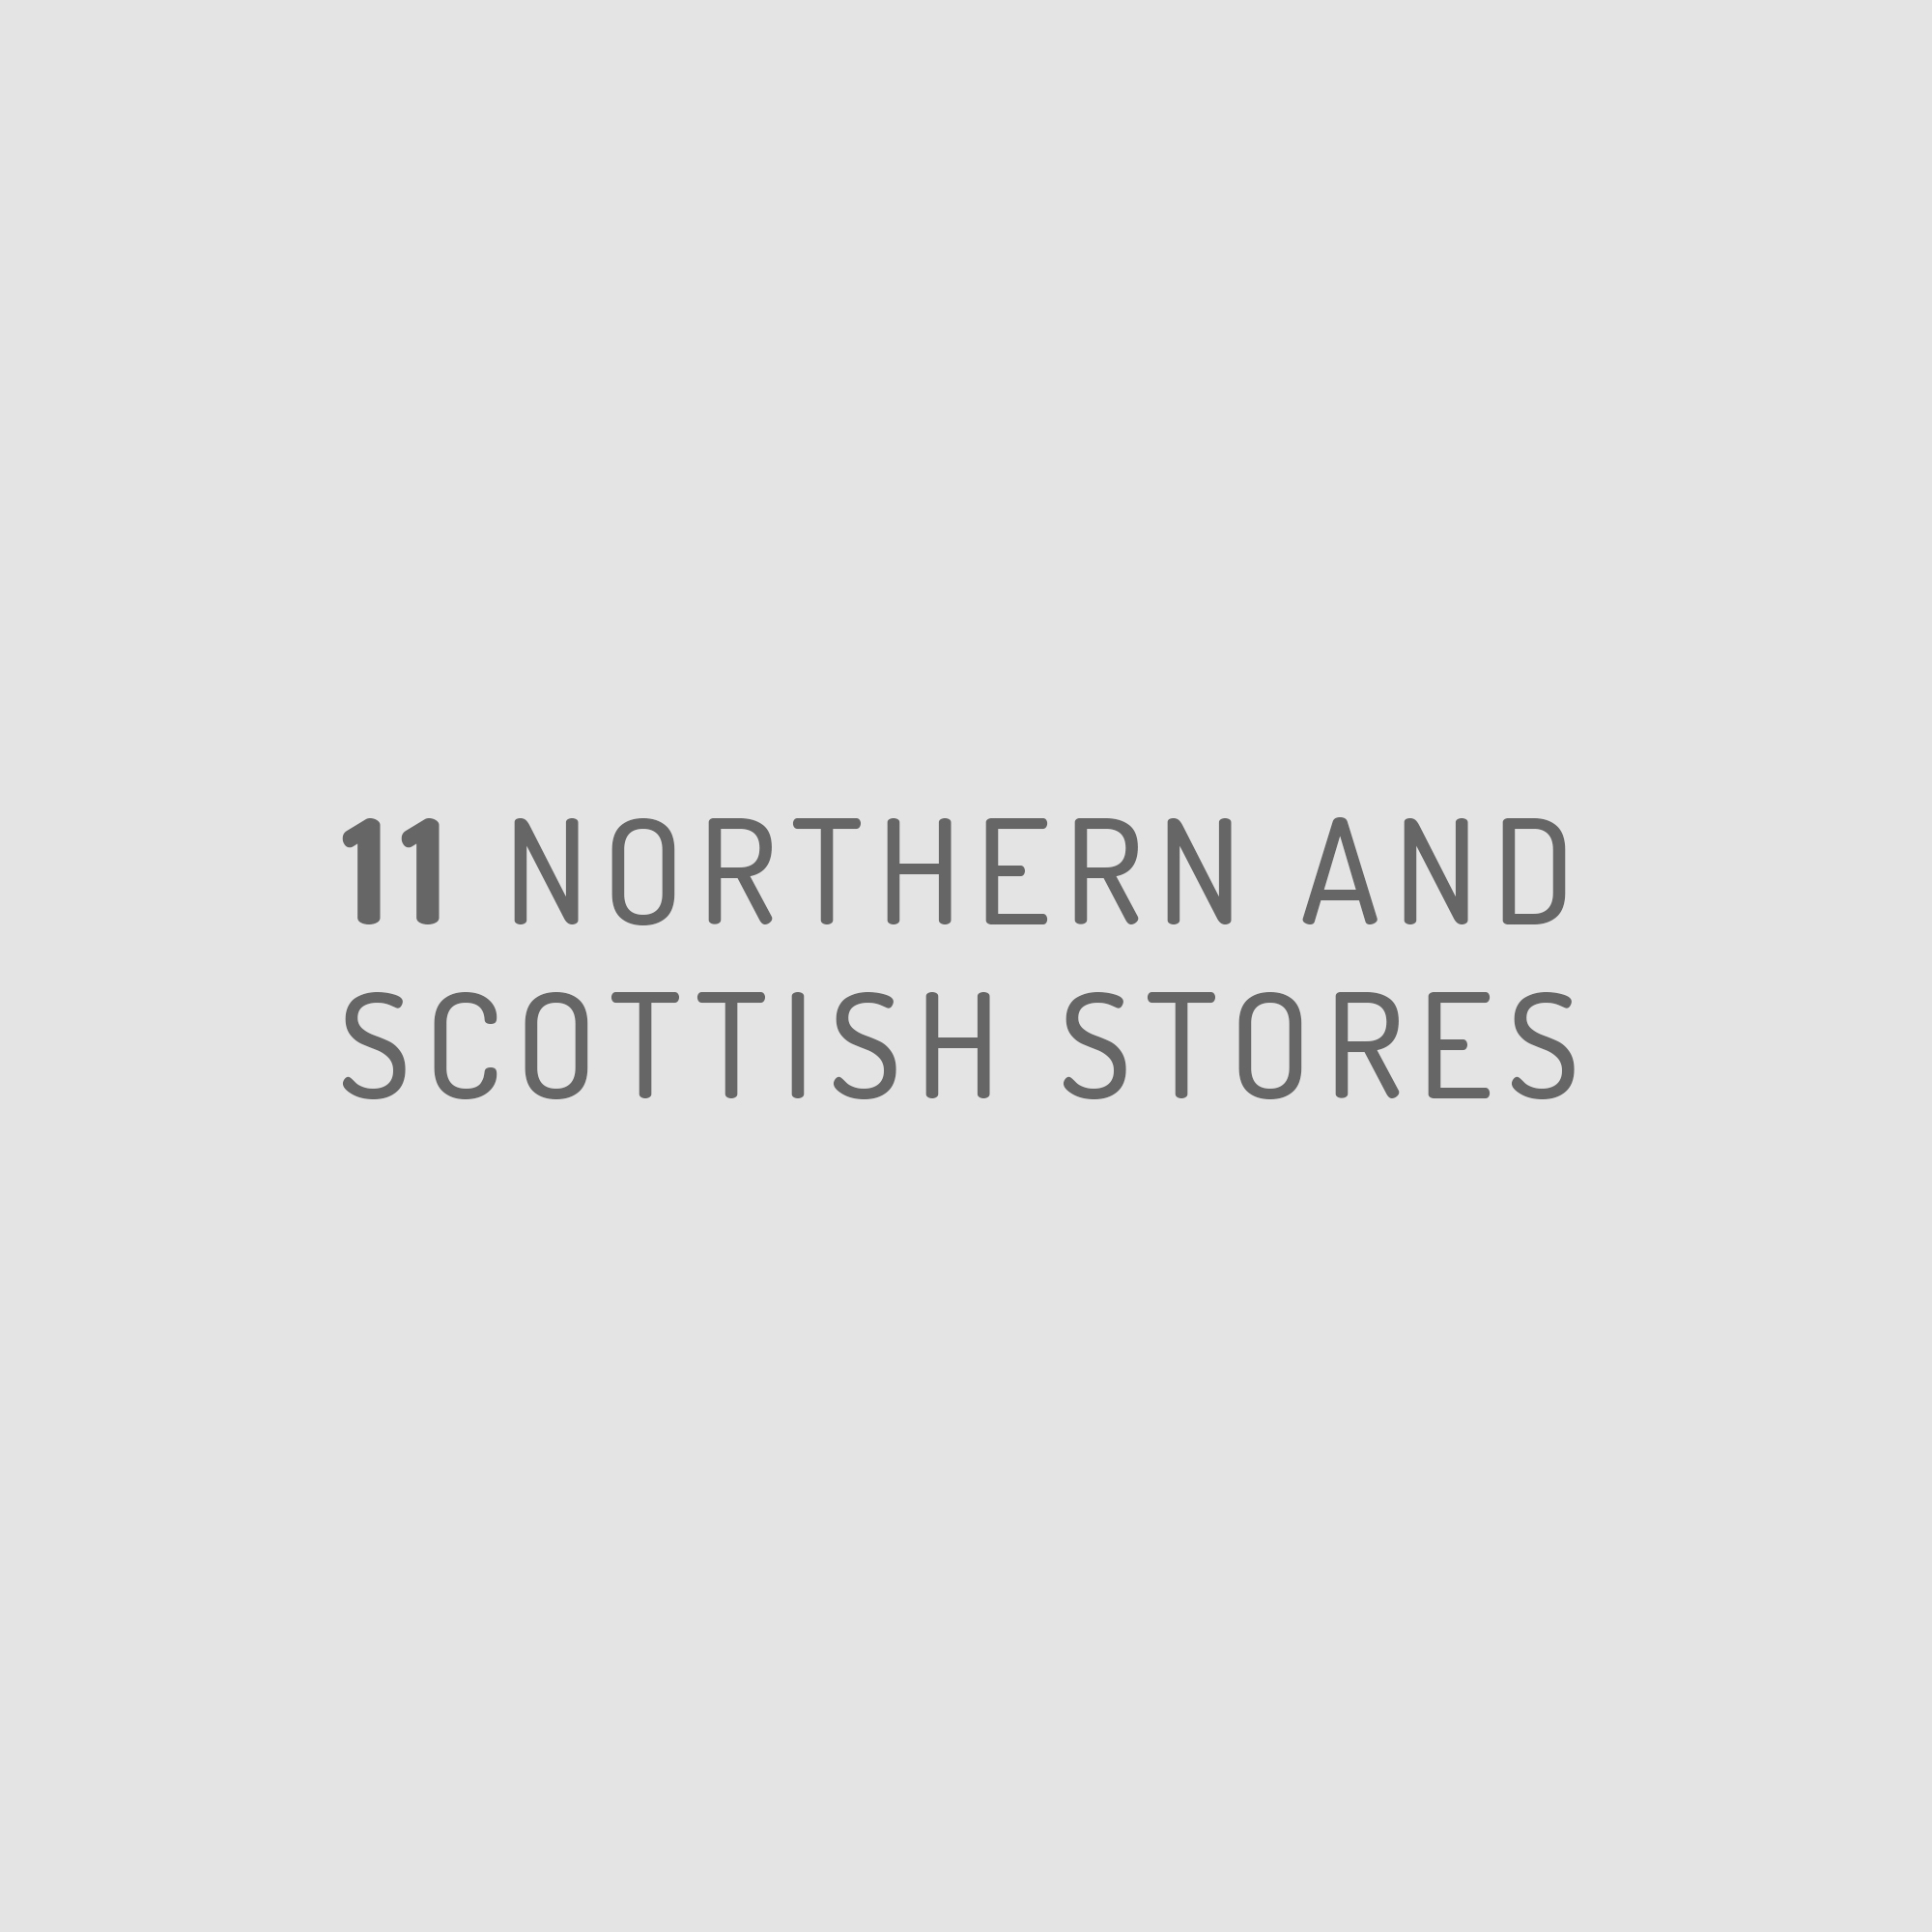 11-Stores-Graphic.jpg